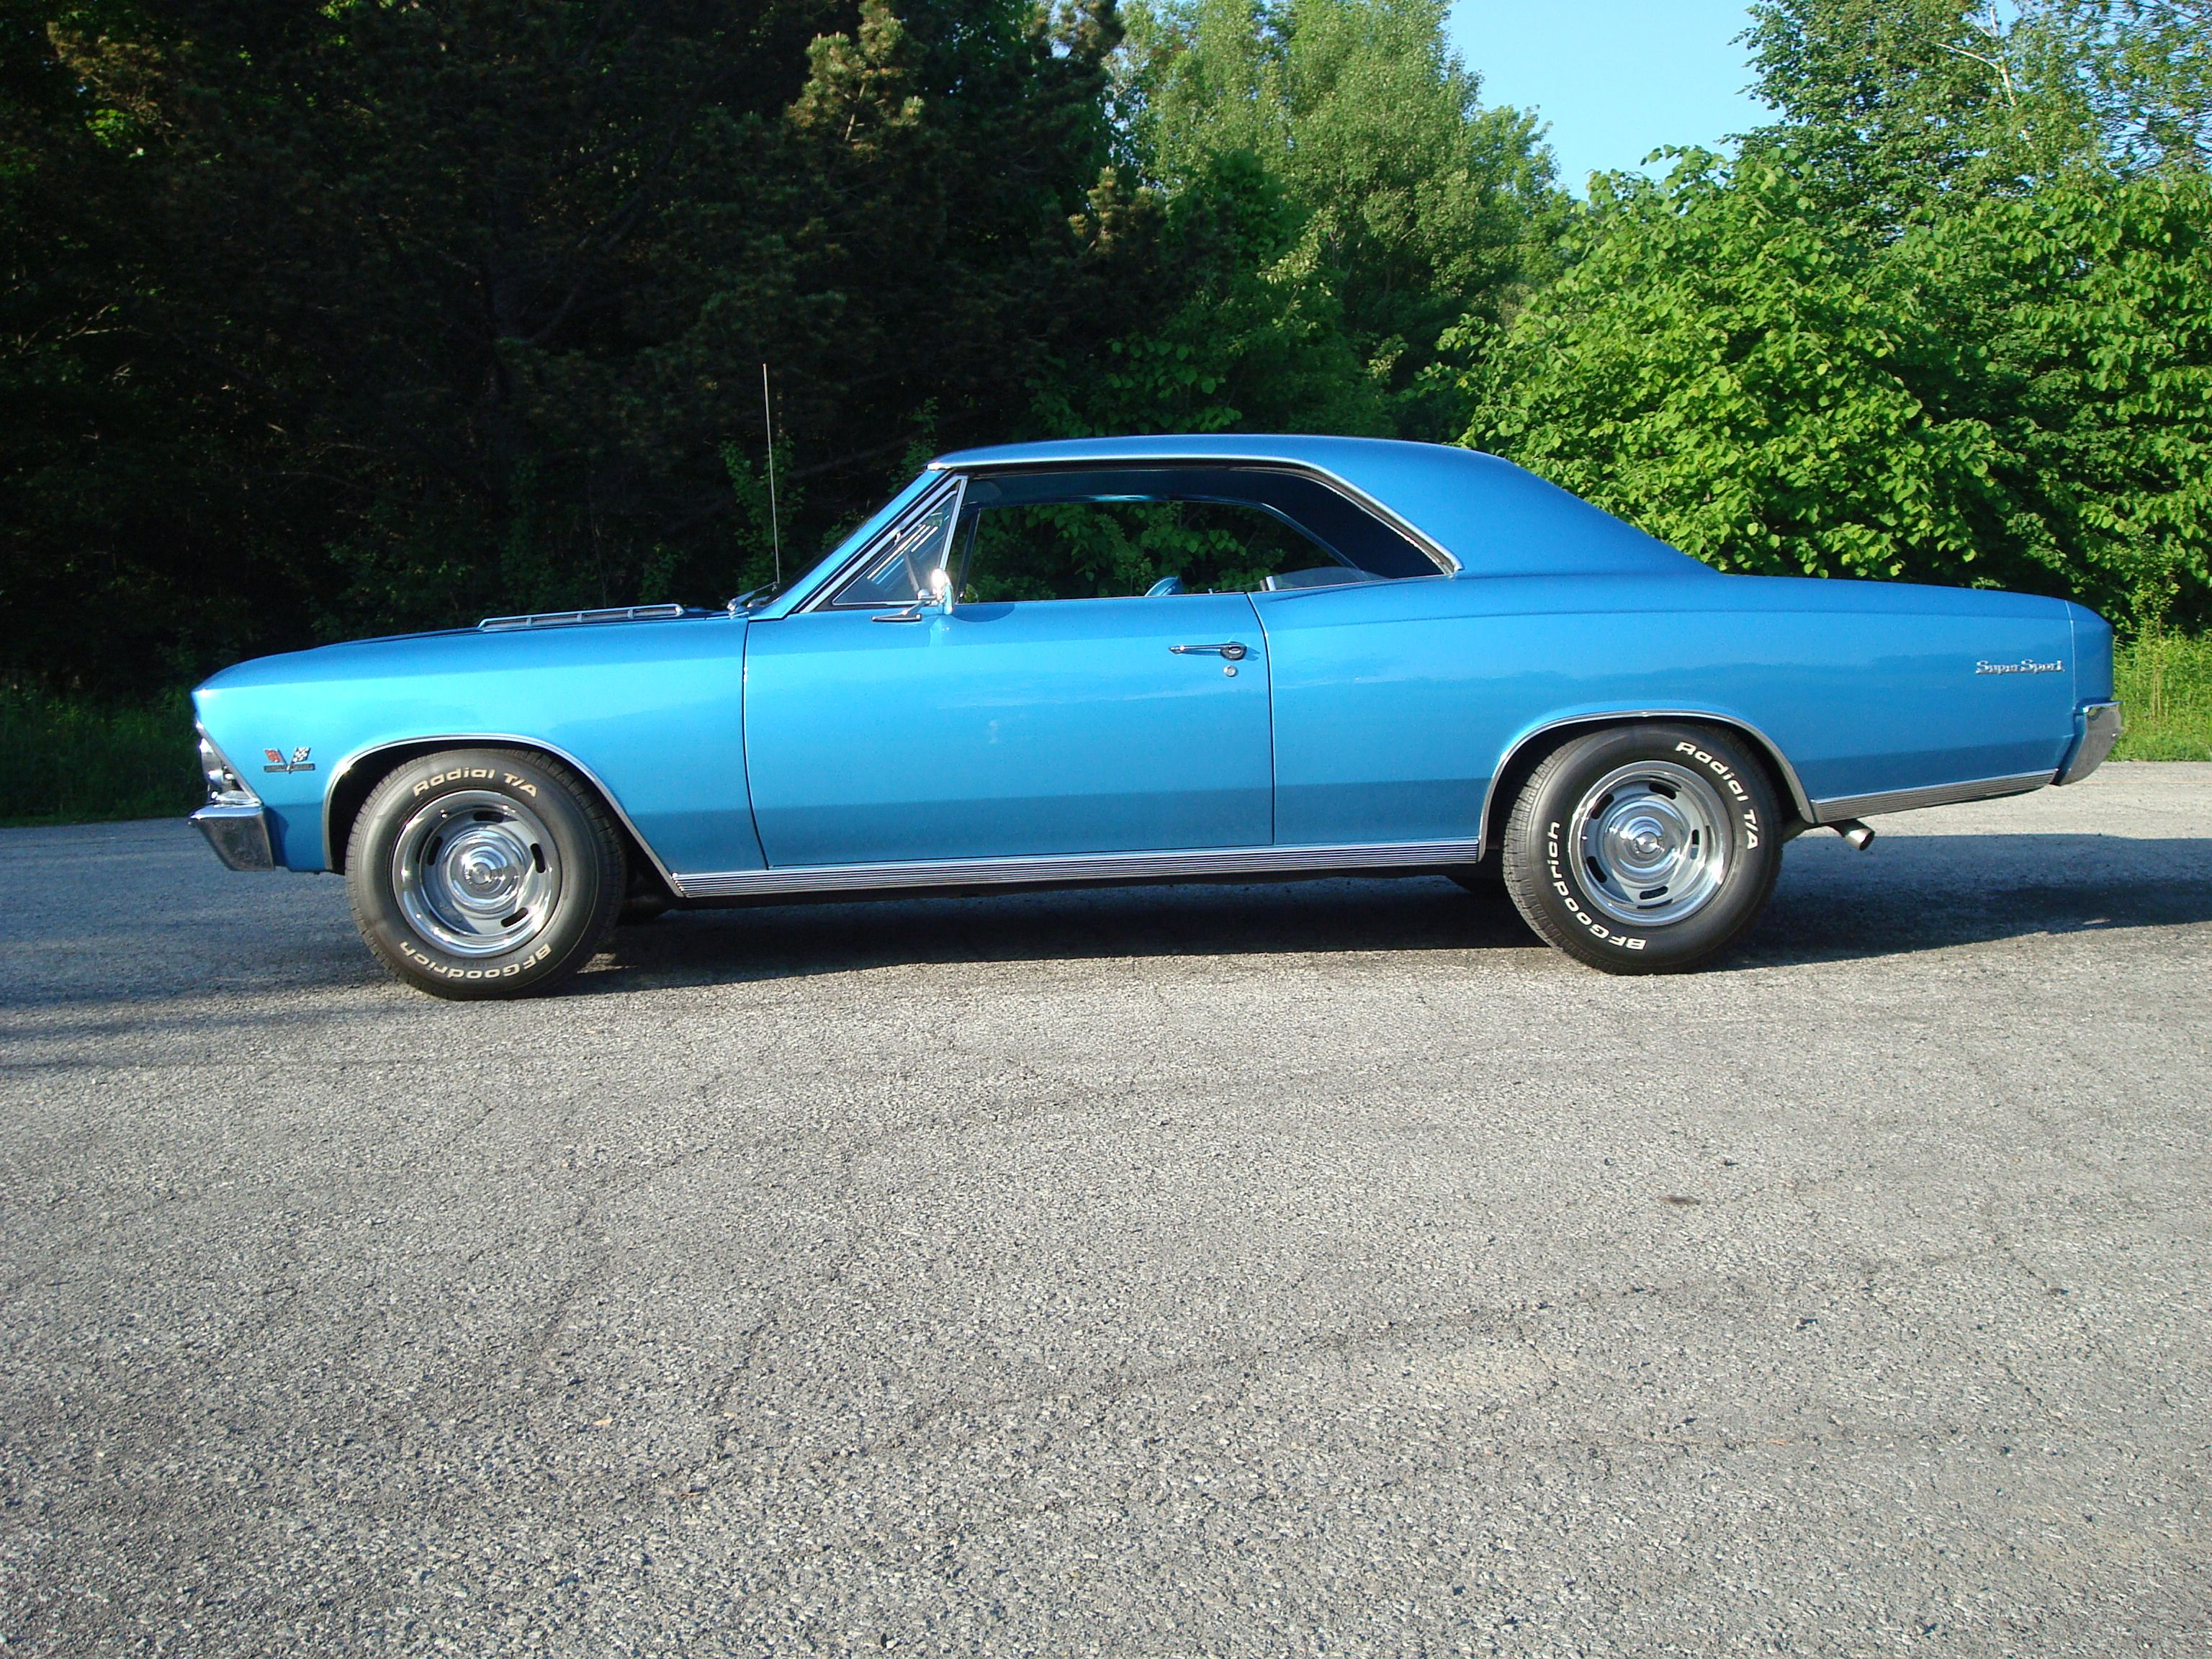 1966 Chevelle Ss 396 In The Perfect Color With The Muncie M21 Rock Crusher 4 Spd Manual